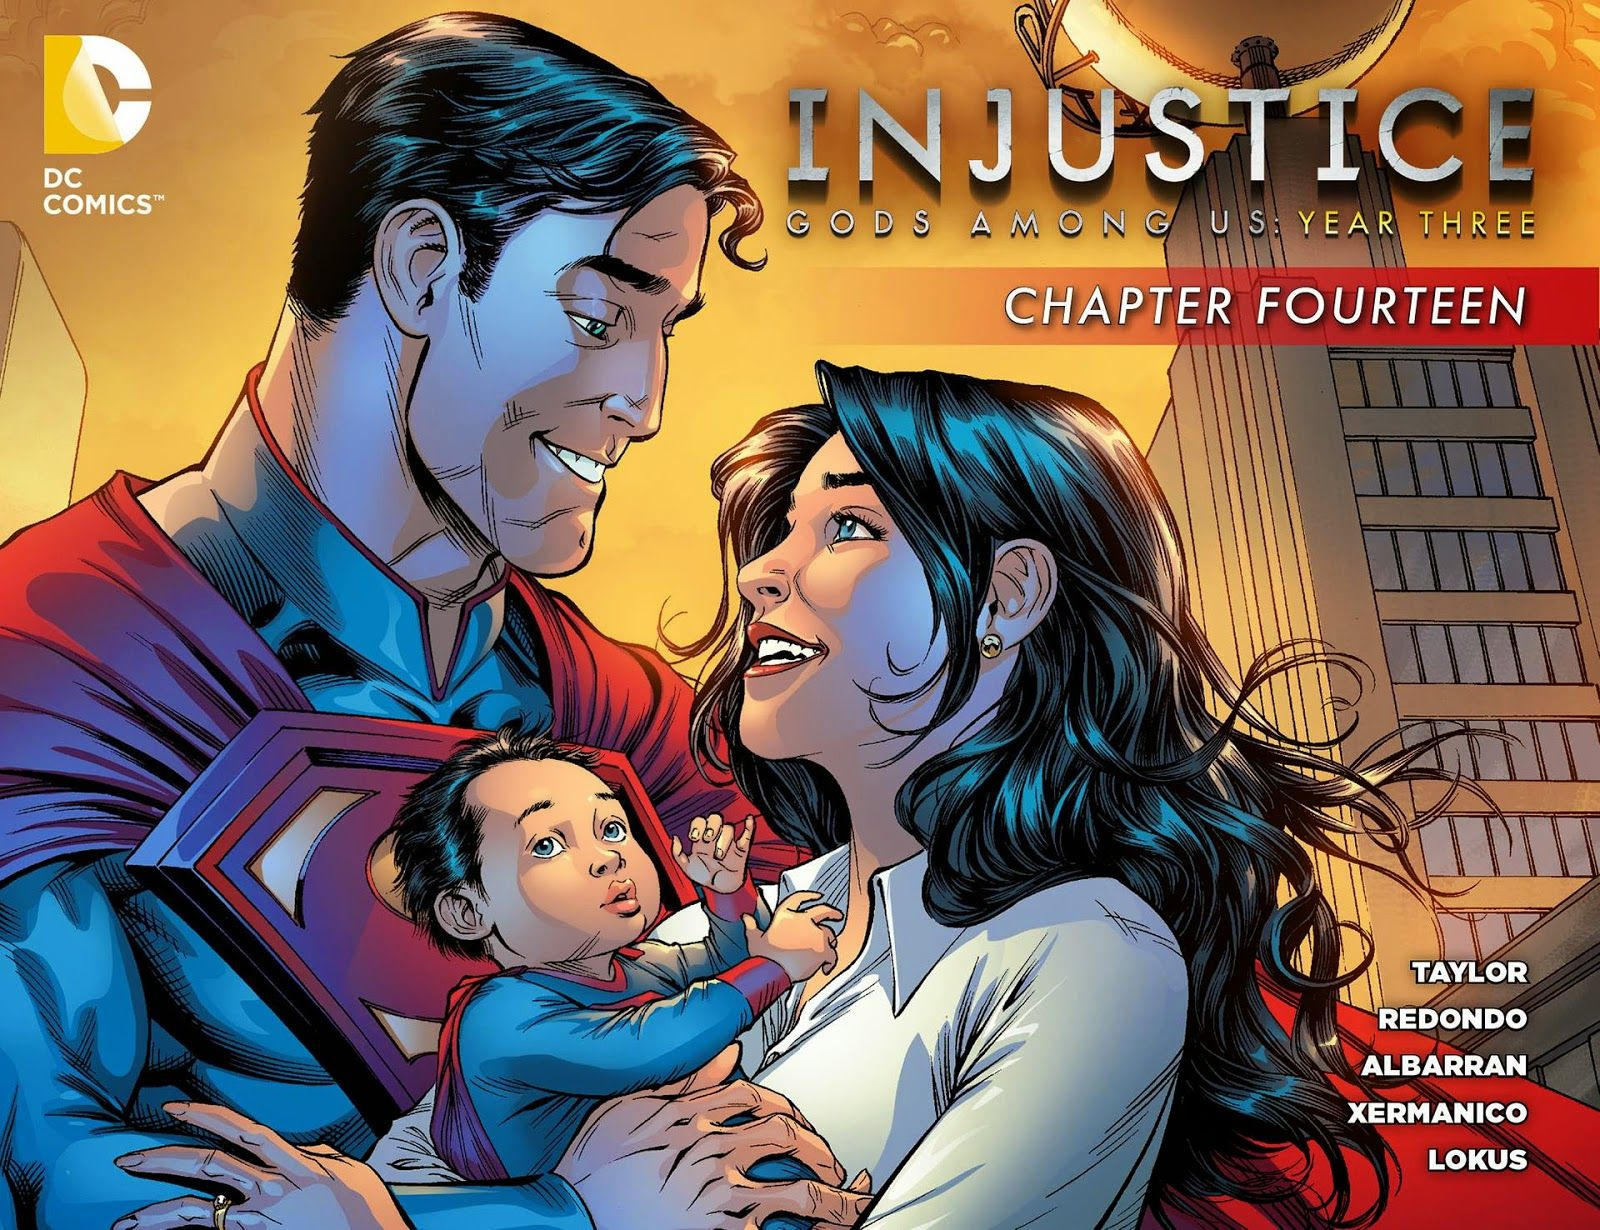 Weird Science: Injustice: Year Three #14 Review